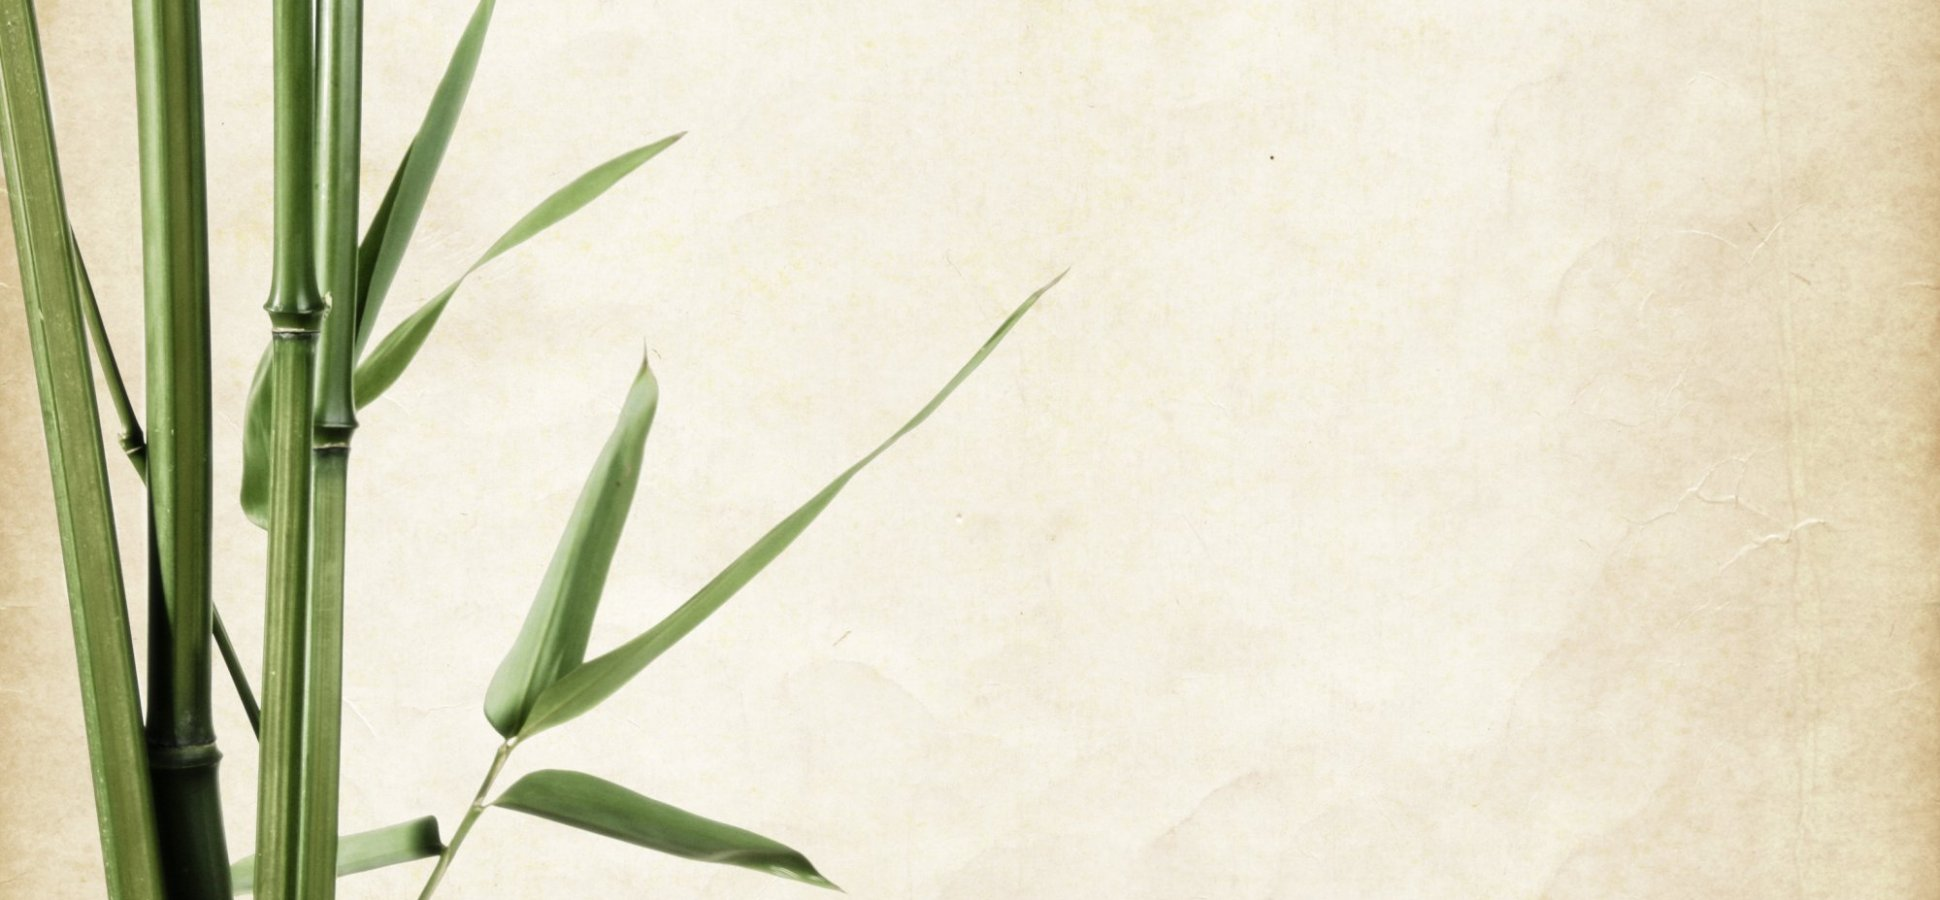 Thinking of Business Like a Bamboo Tree Can Help You Stay Motivated. Here's Why